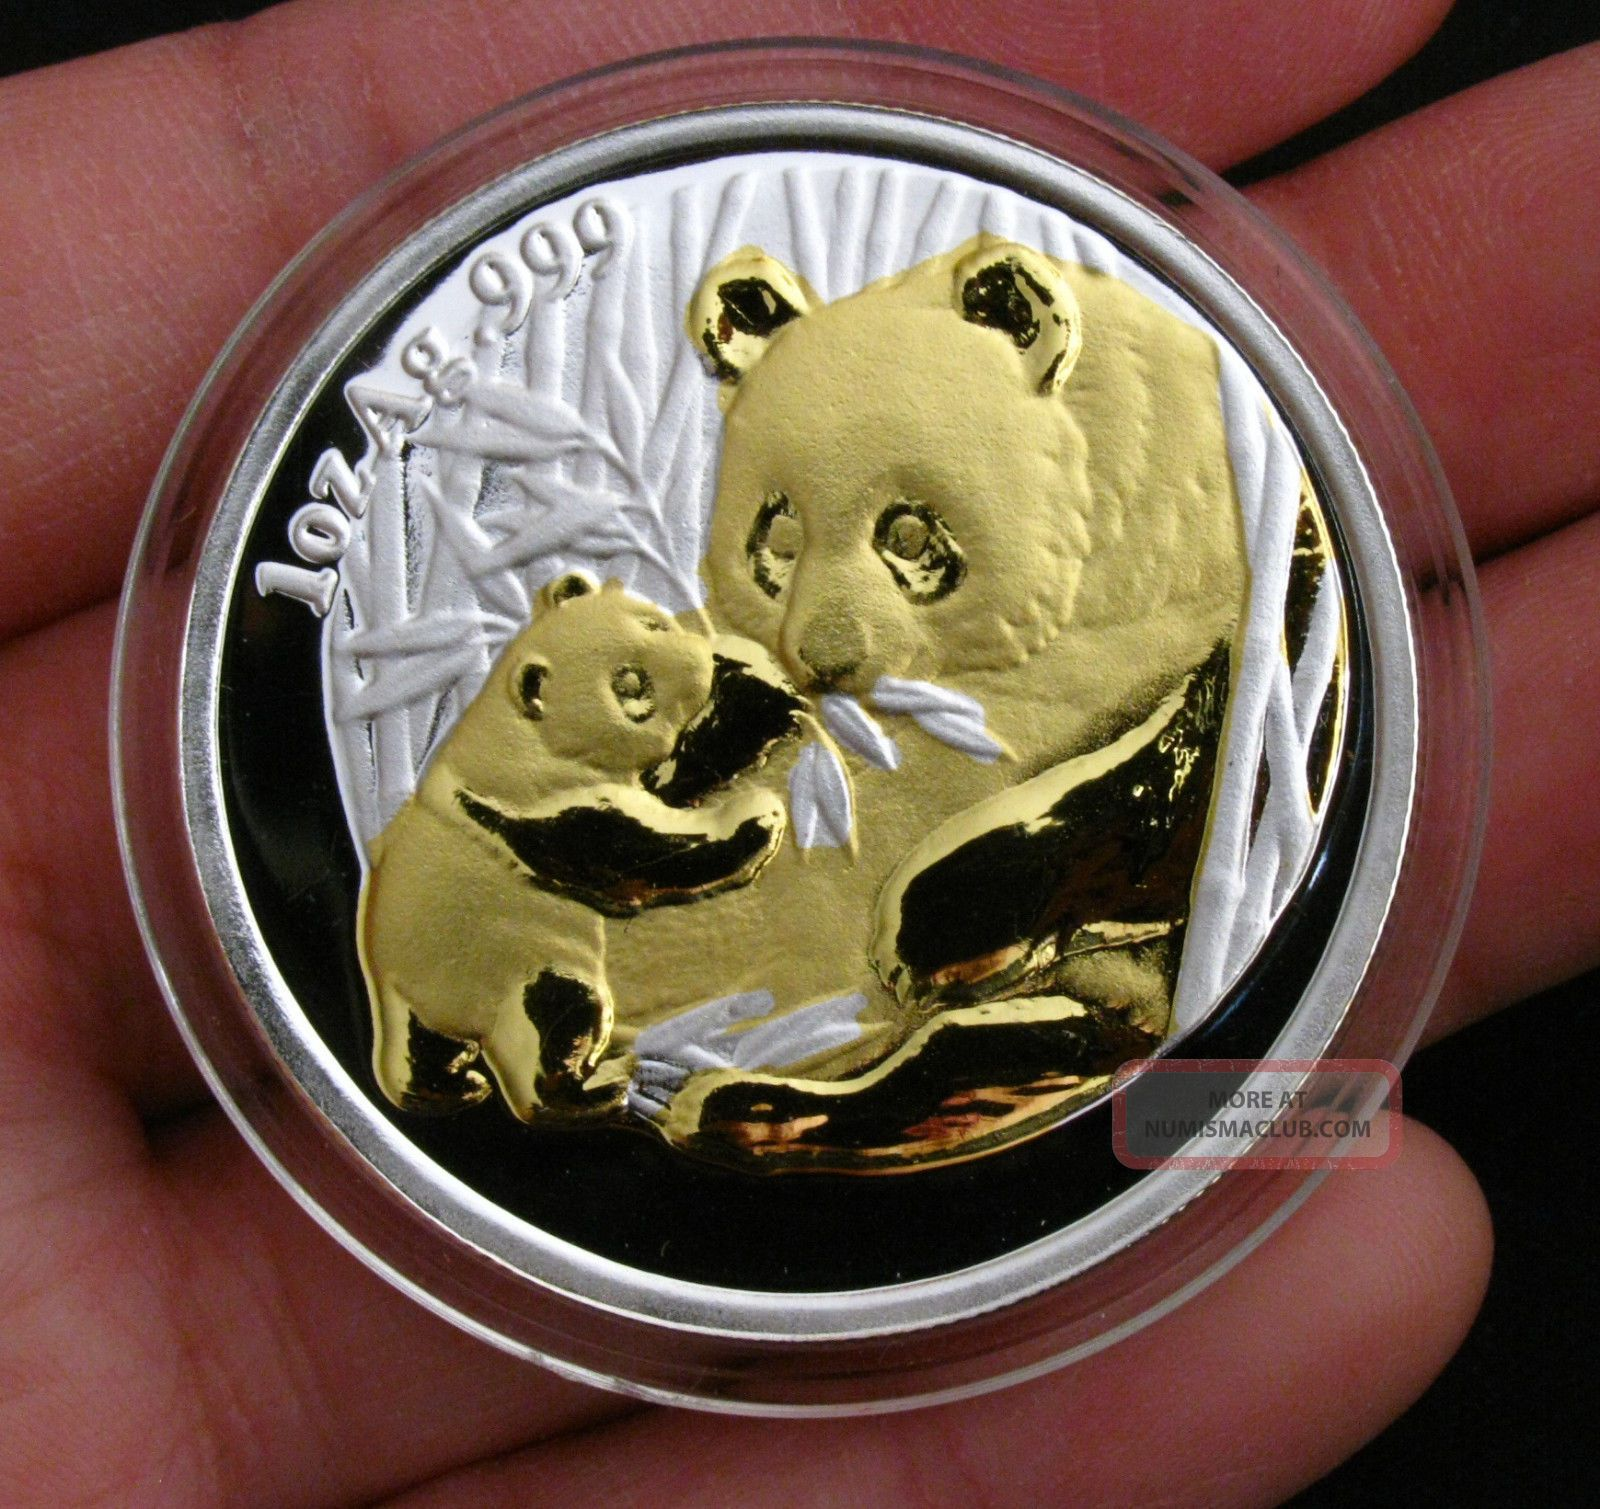 2005 Chinese Giant Panda 24k Gold & Silver Commemorative Medal Bimetallic Coin Coins: World photo